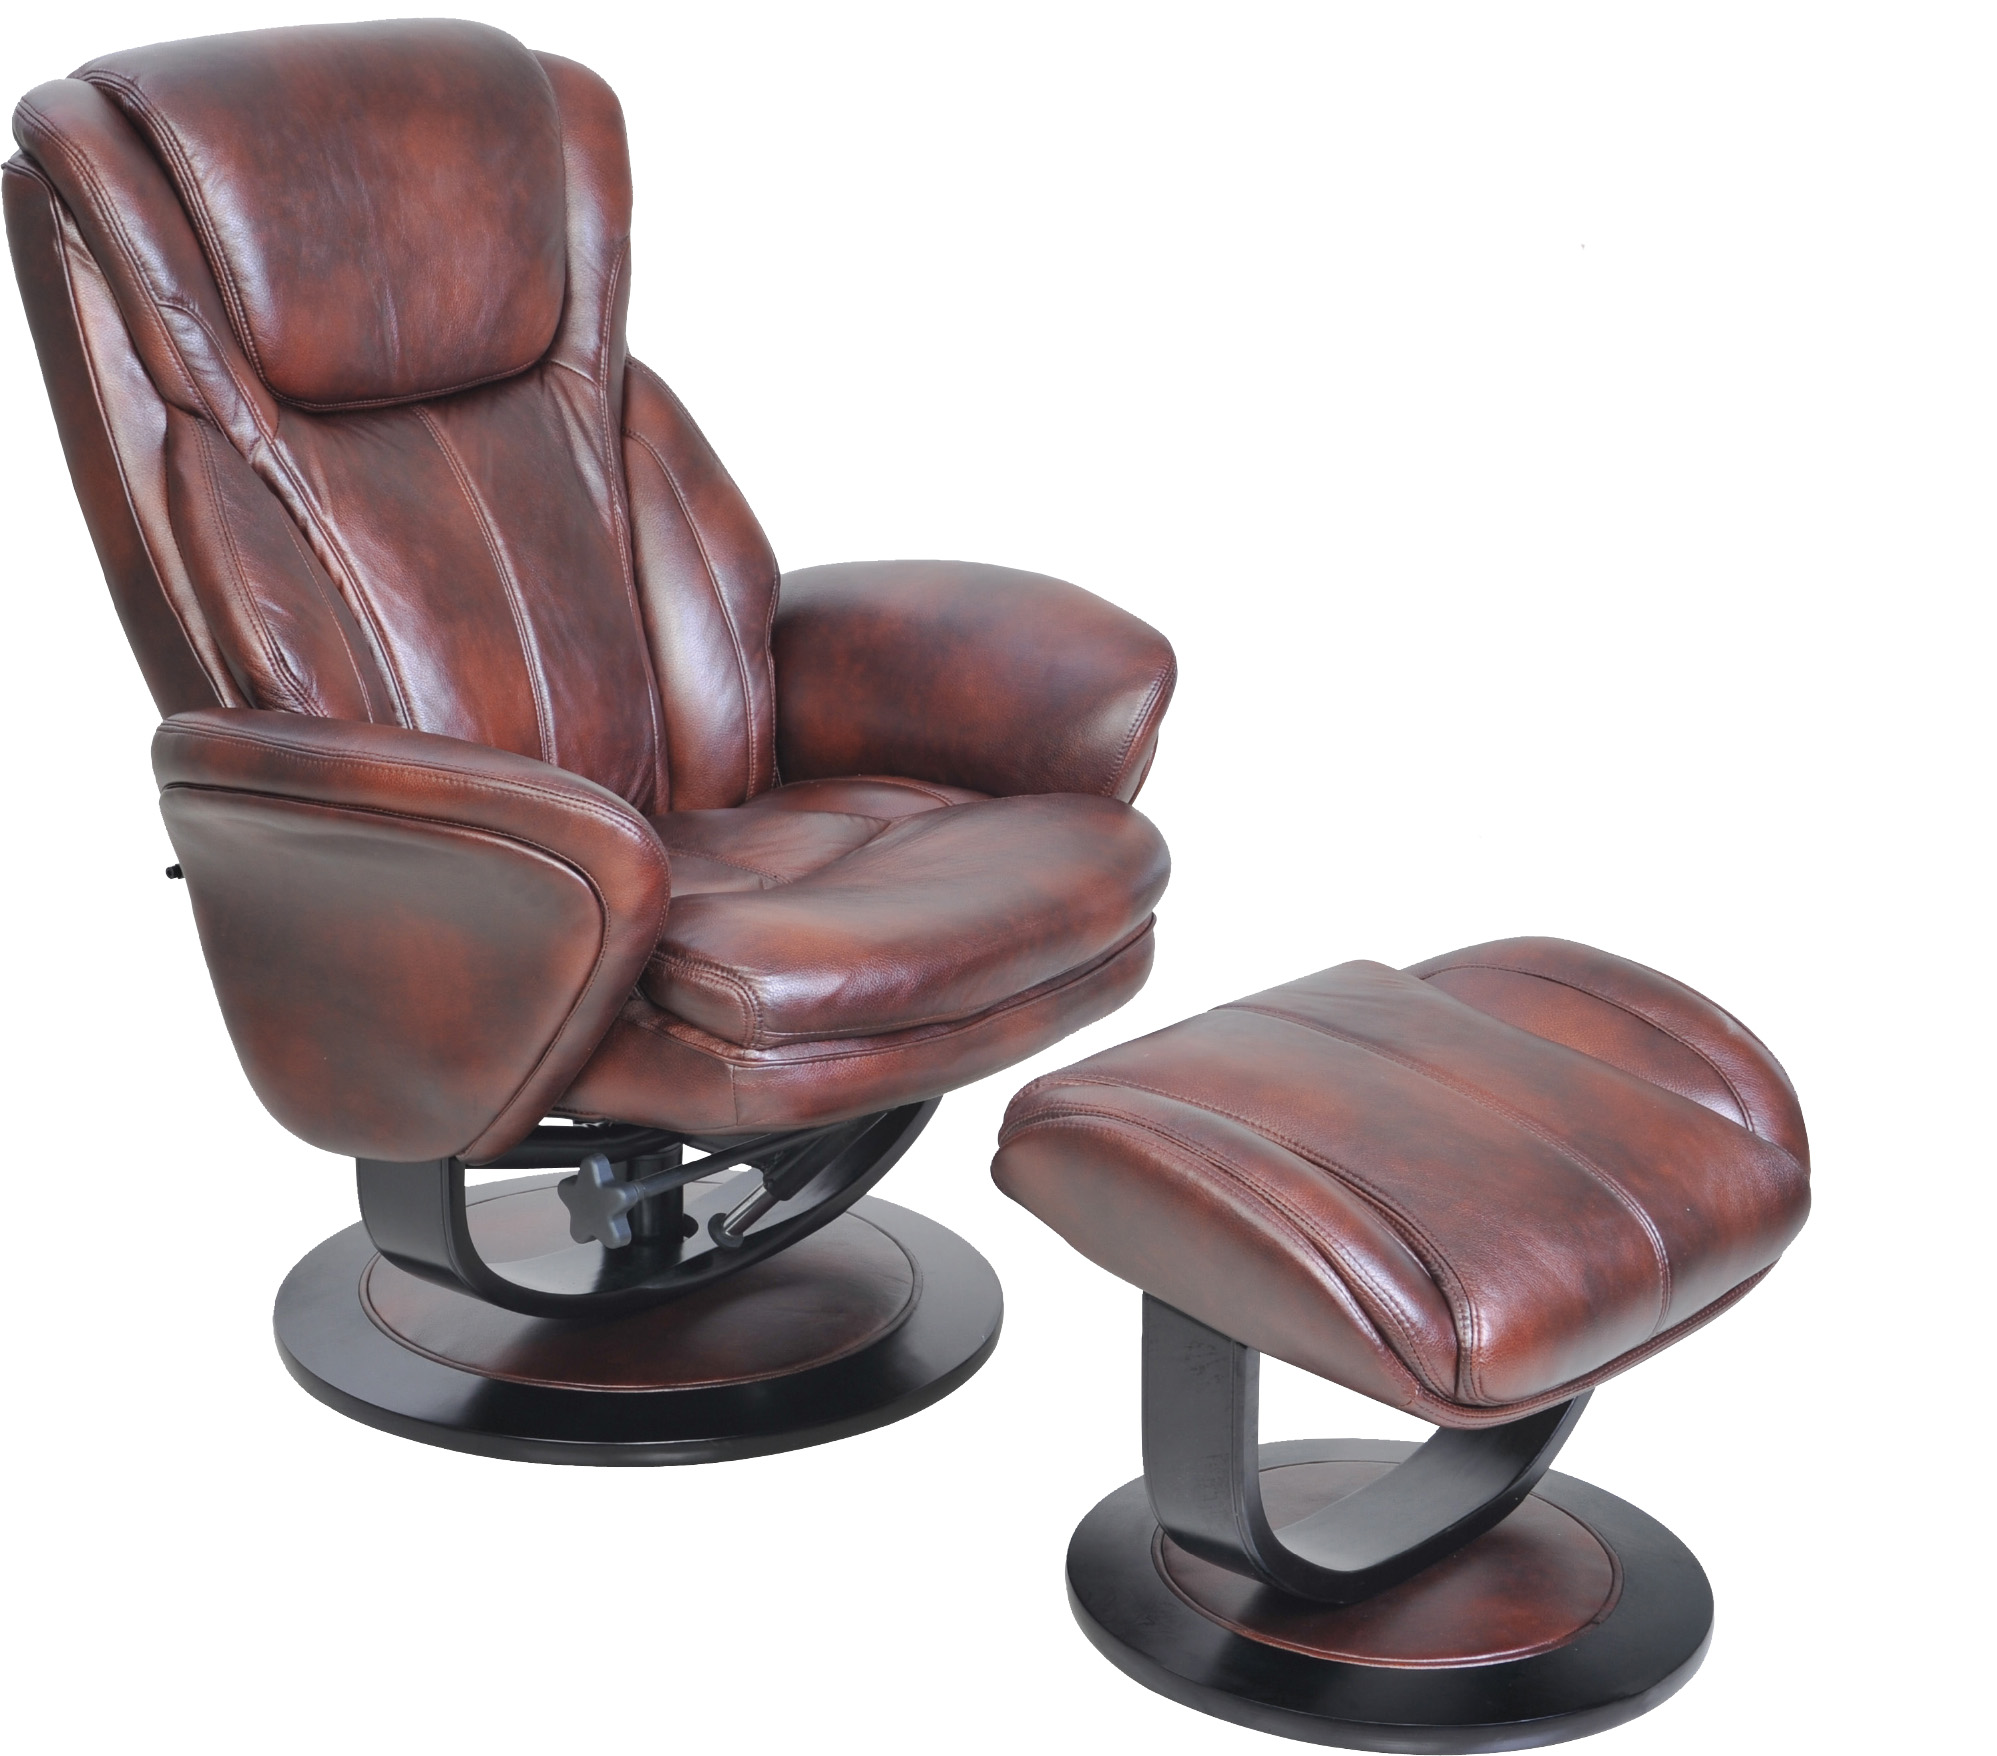 swivel recliner chairs for living room 2. Barcalounger Roma II Leather Recliner Chair and Ottoman